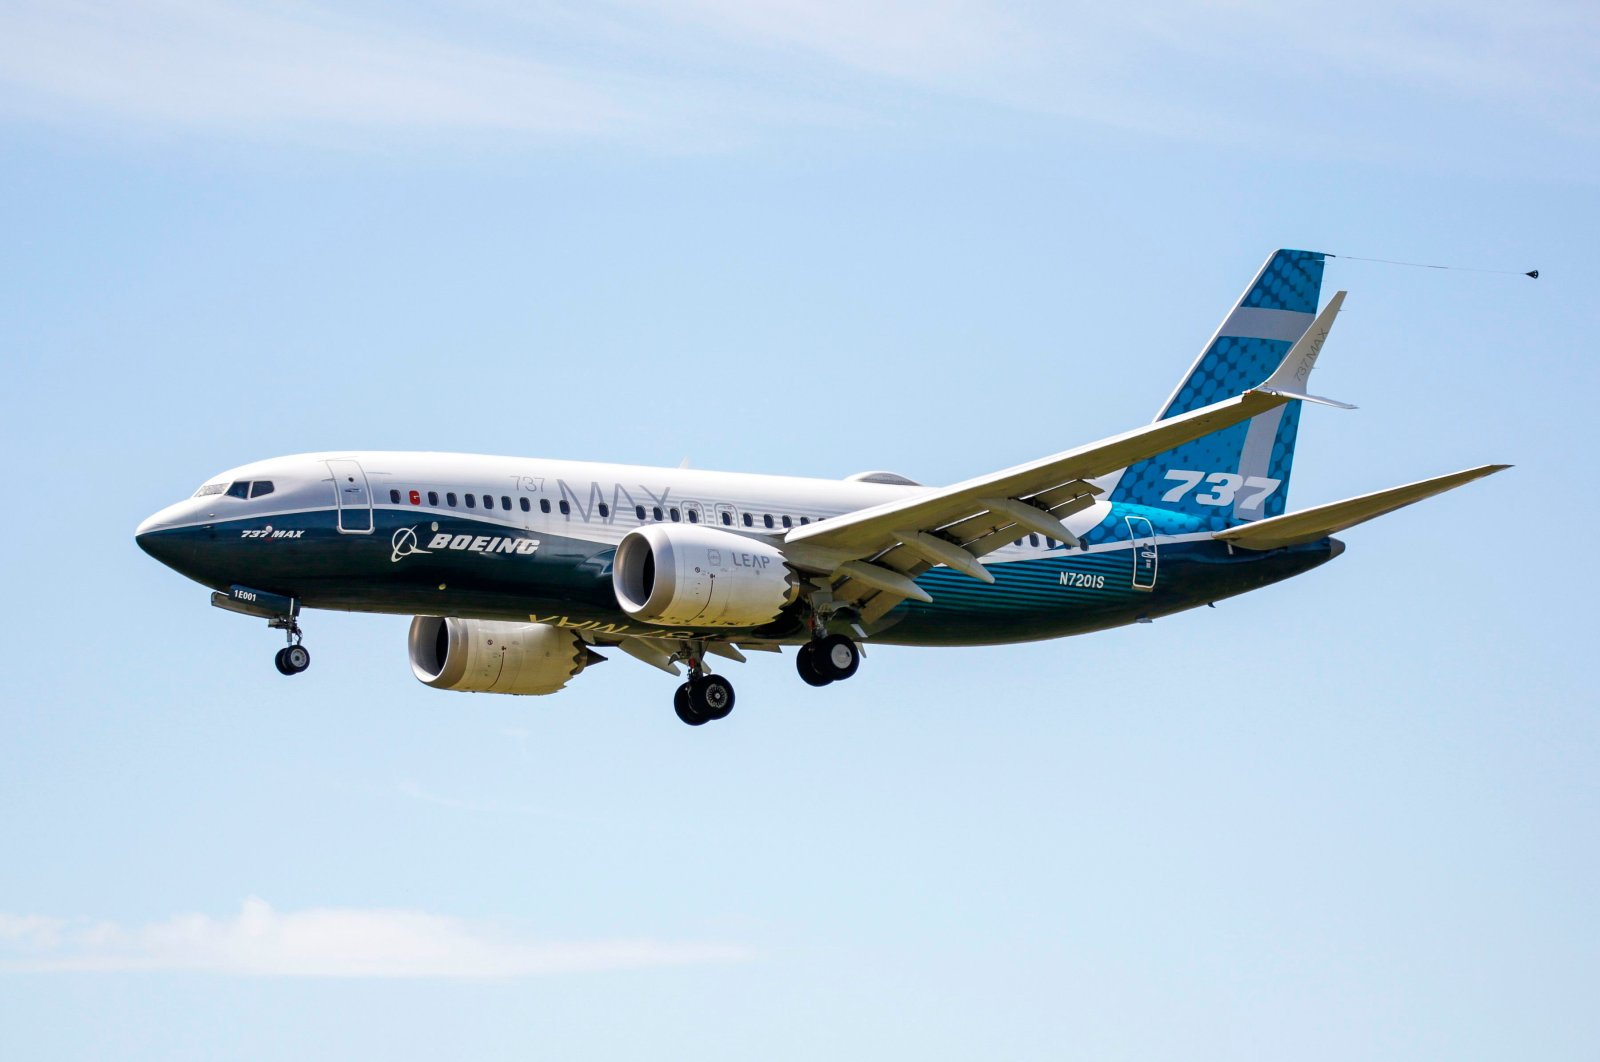 A Boeing 737 Max jet comes in for a landing following a Federal Aviation Administration (FAA) test flight at Boeing Field in Seattle, Washington D.C., June 29, 2020 (AFP Photo)